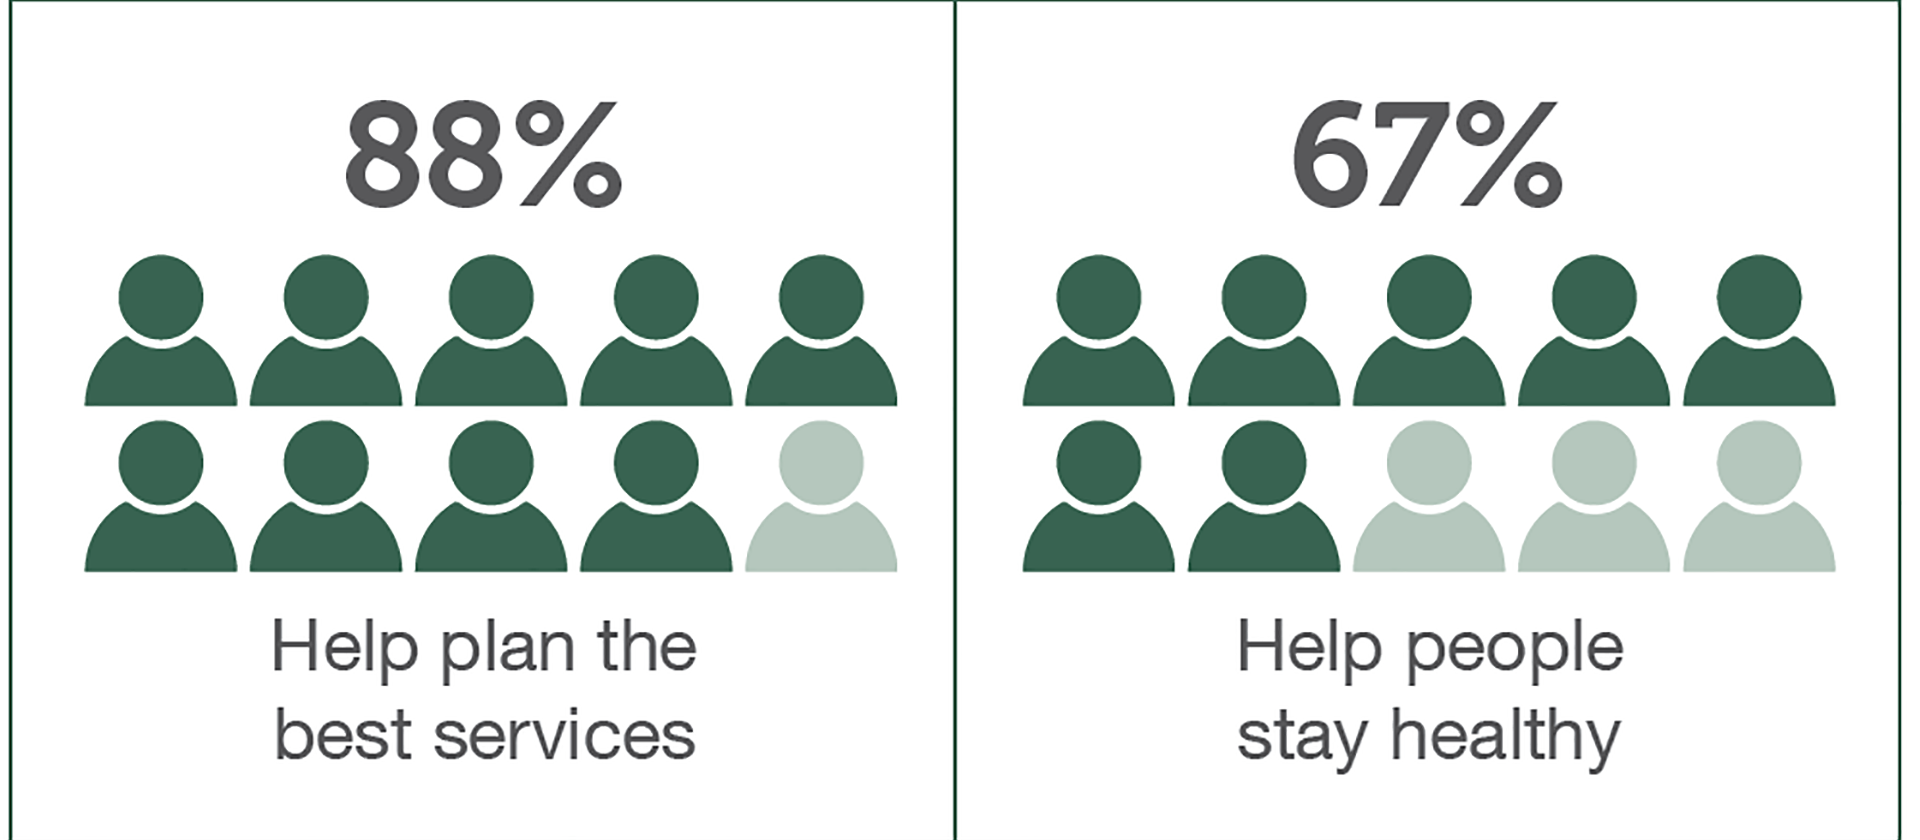 An extract from the Yorkshire and Humber Care Record survey